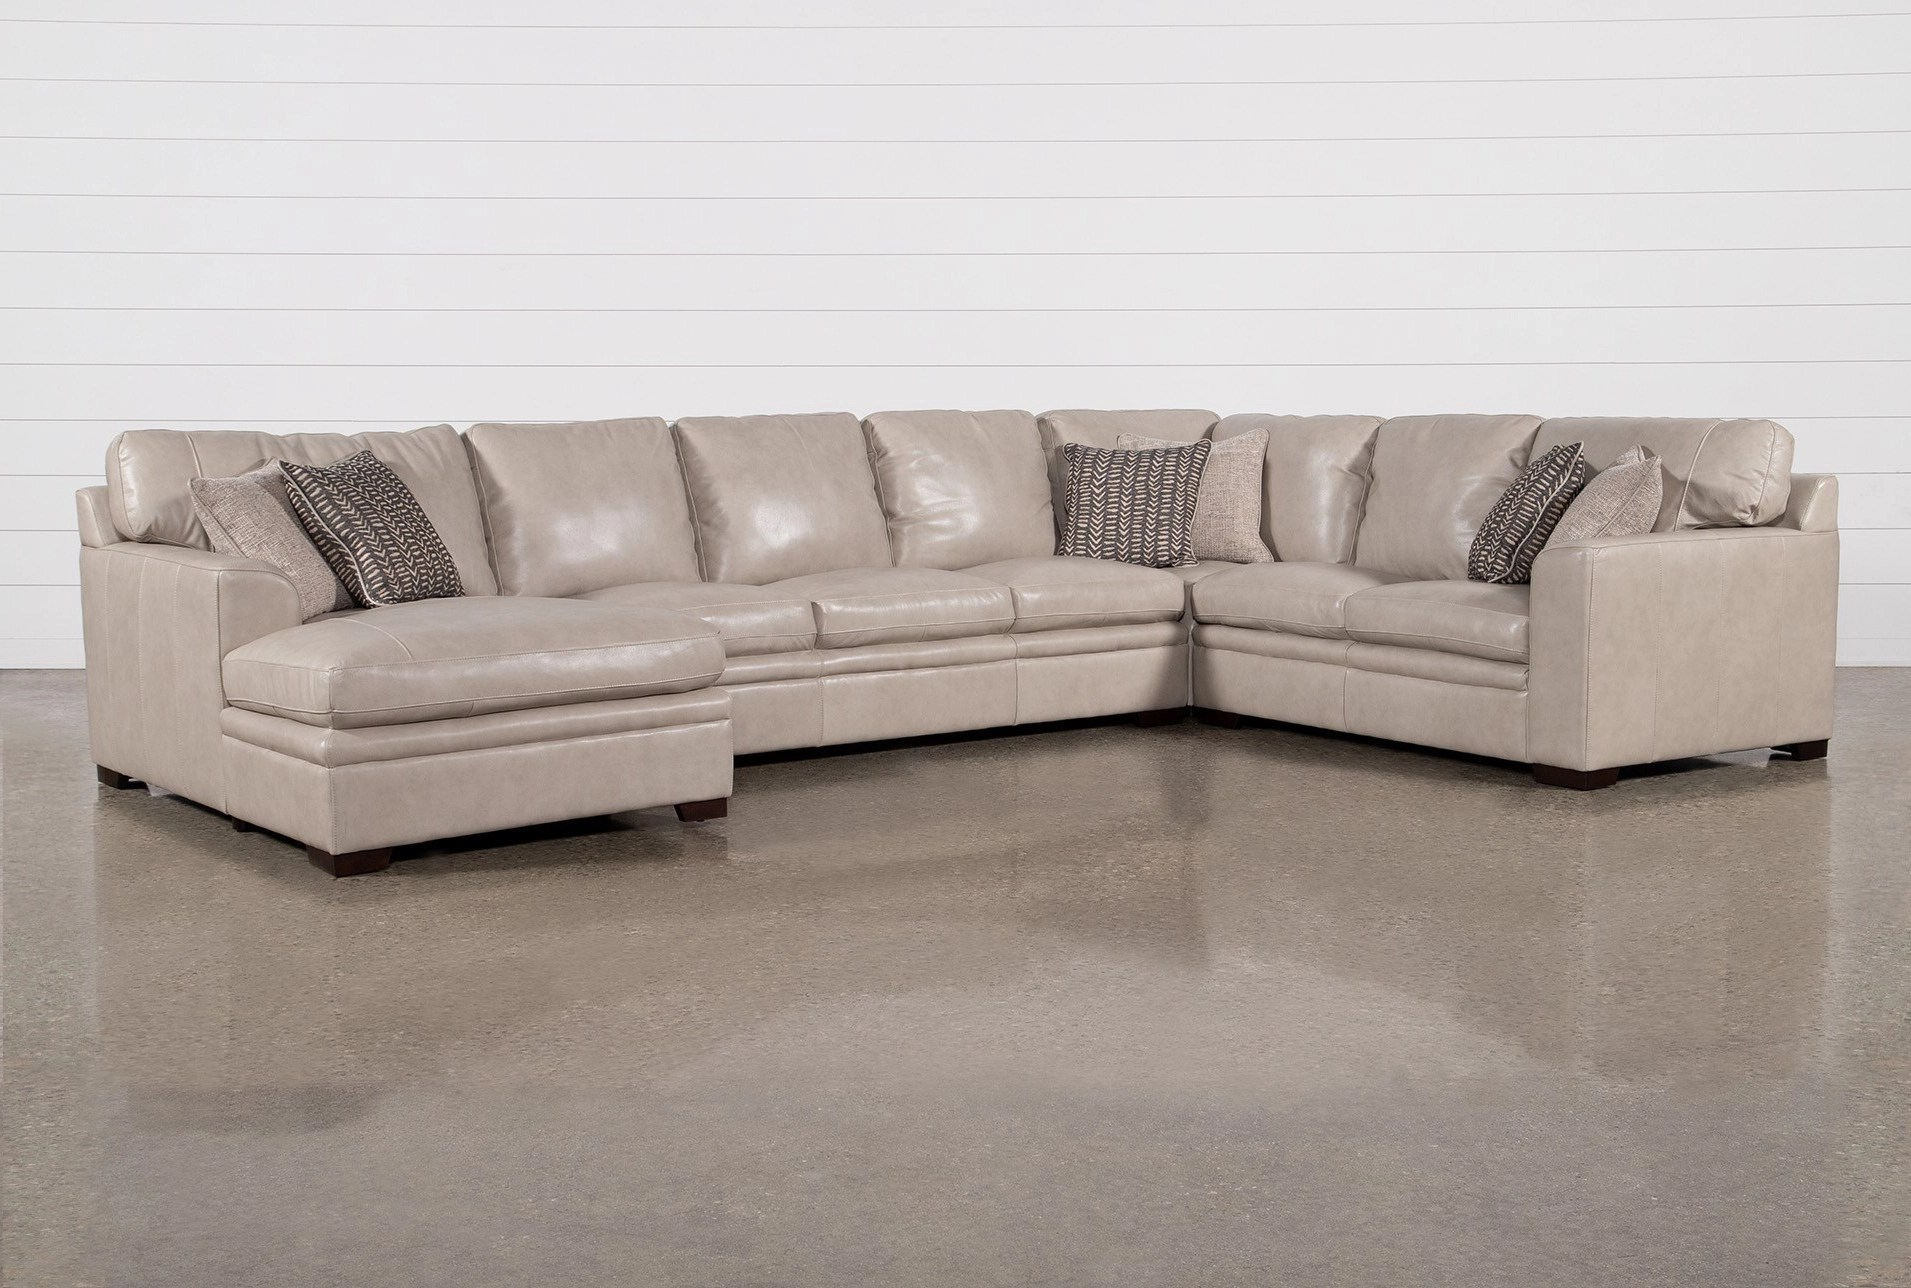 greer stone leather 4 piece 171 sectional with left arm facing chaise armless sofa